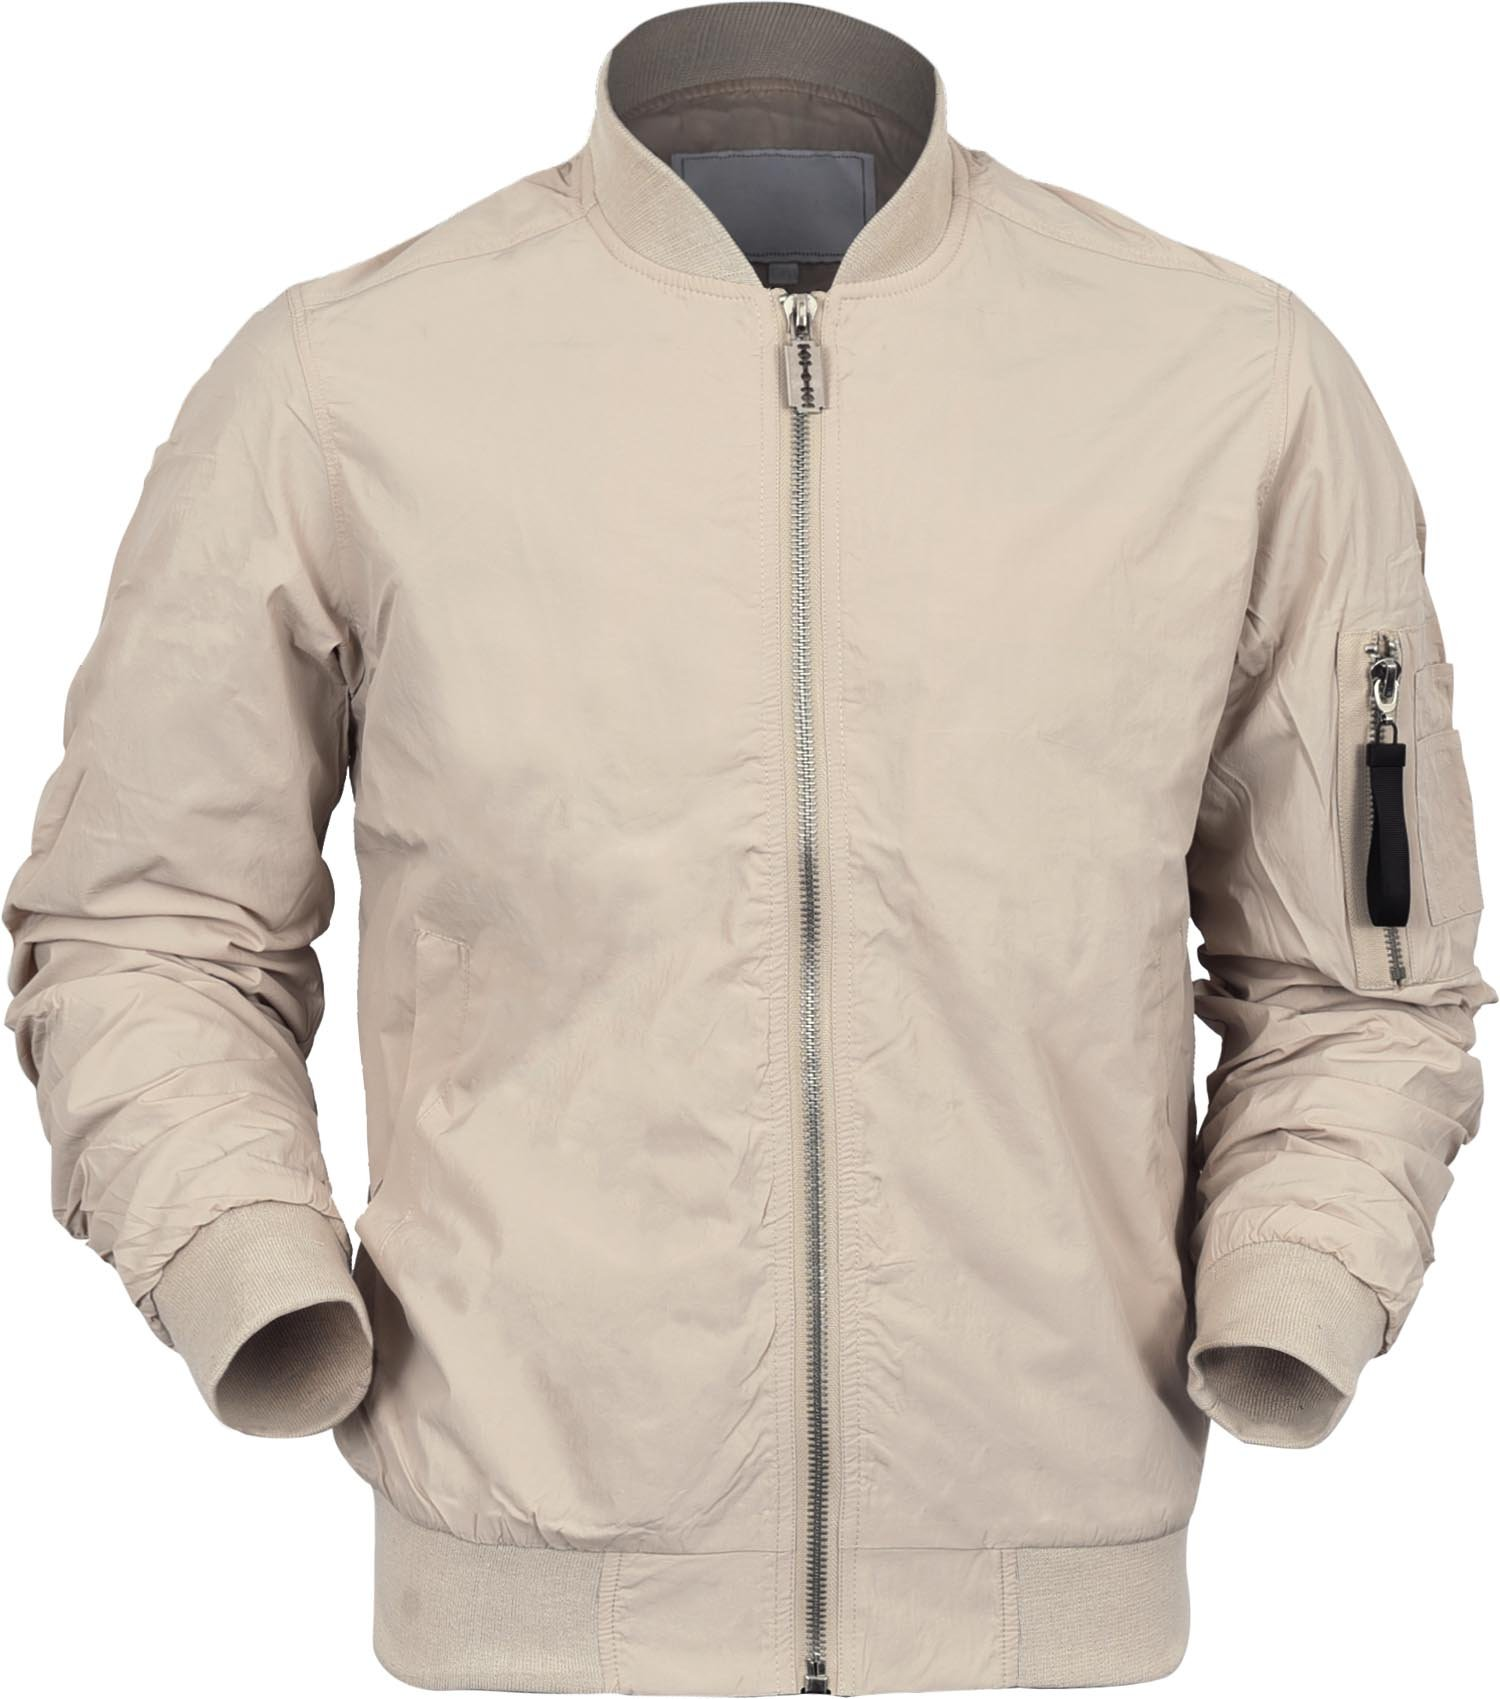 VW Mens Bomber Jacket Active Casual Military MA-1 Flight (X-Large, 1011_Sand)